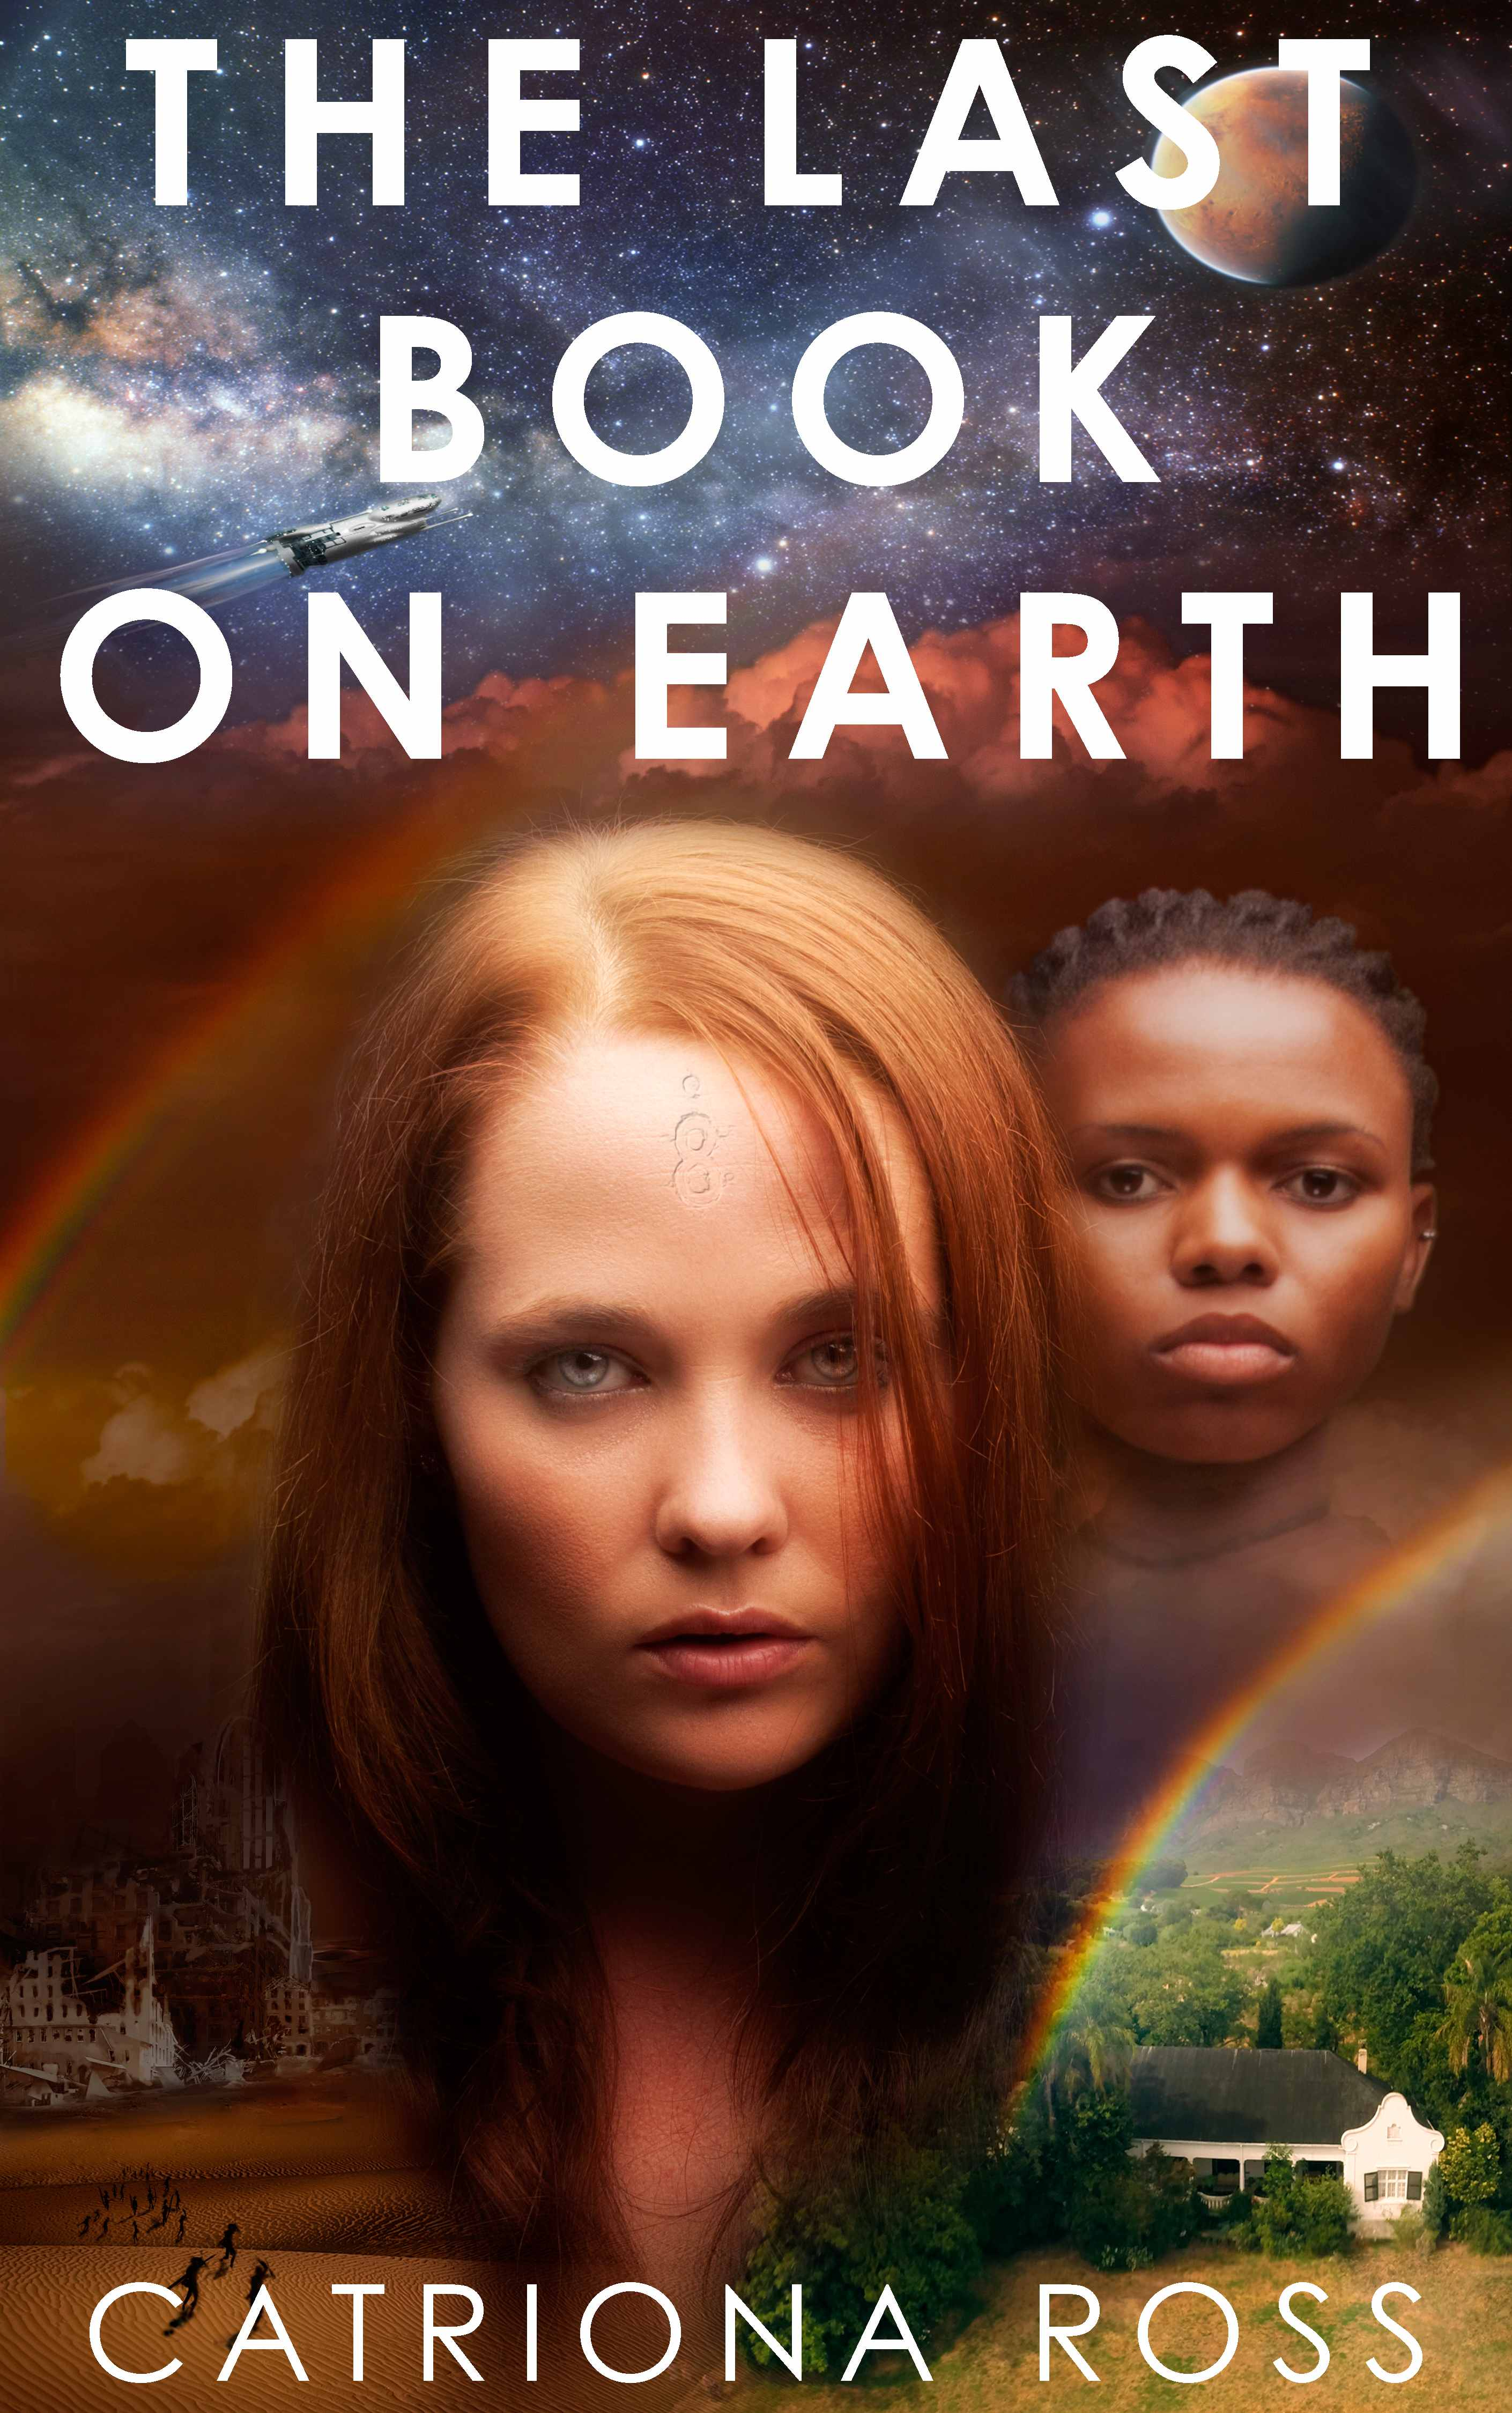 The Last Book on Earth by Catriona Ross